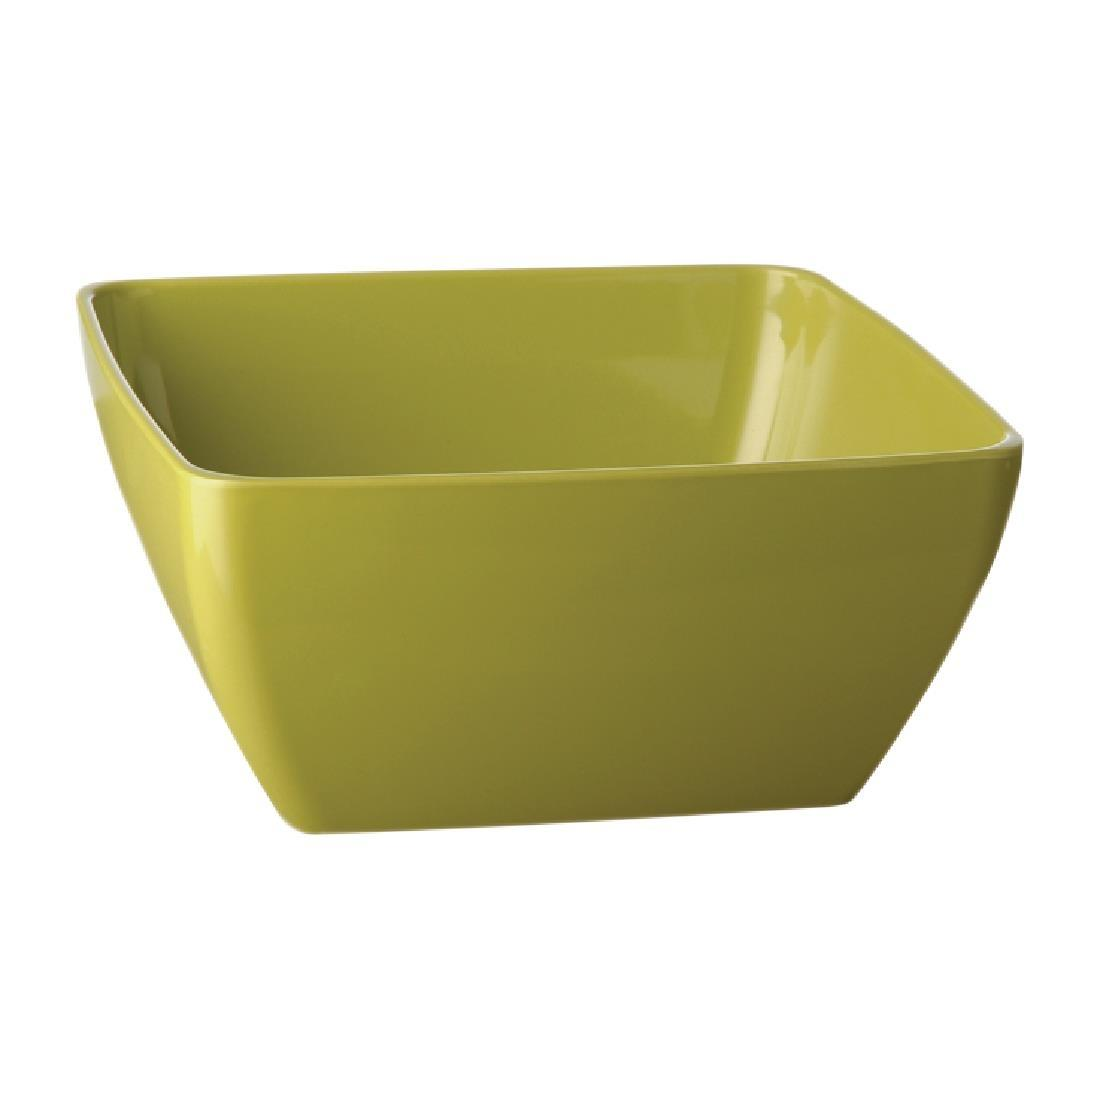 DS019 - APS Pure Bowl Green 250mm - Each - DS019